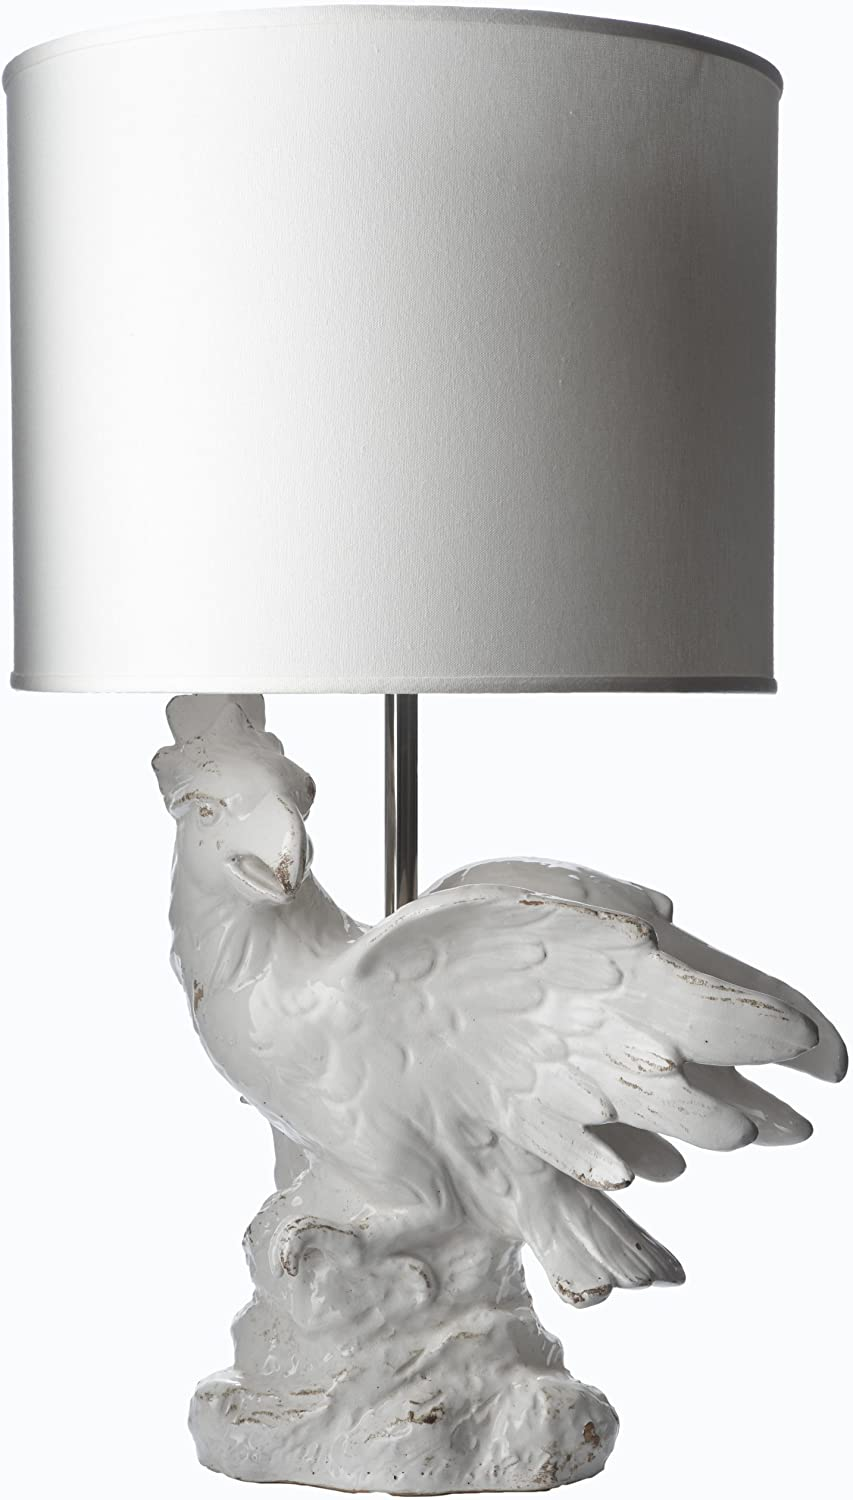 Lazy Susan Sales results No. 1 Cockatoo Ceramic Lamp Shade White with Inexpensive Fabric